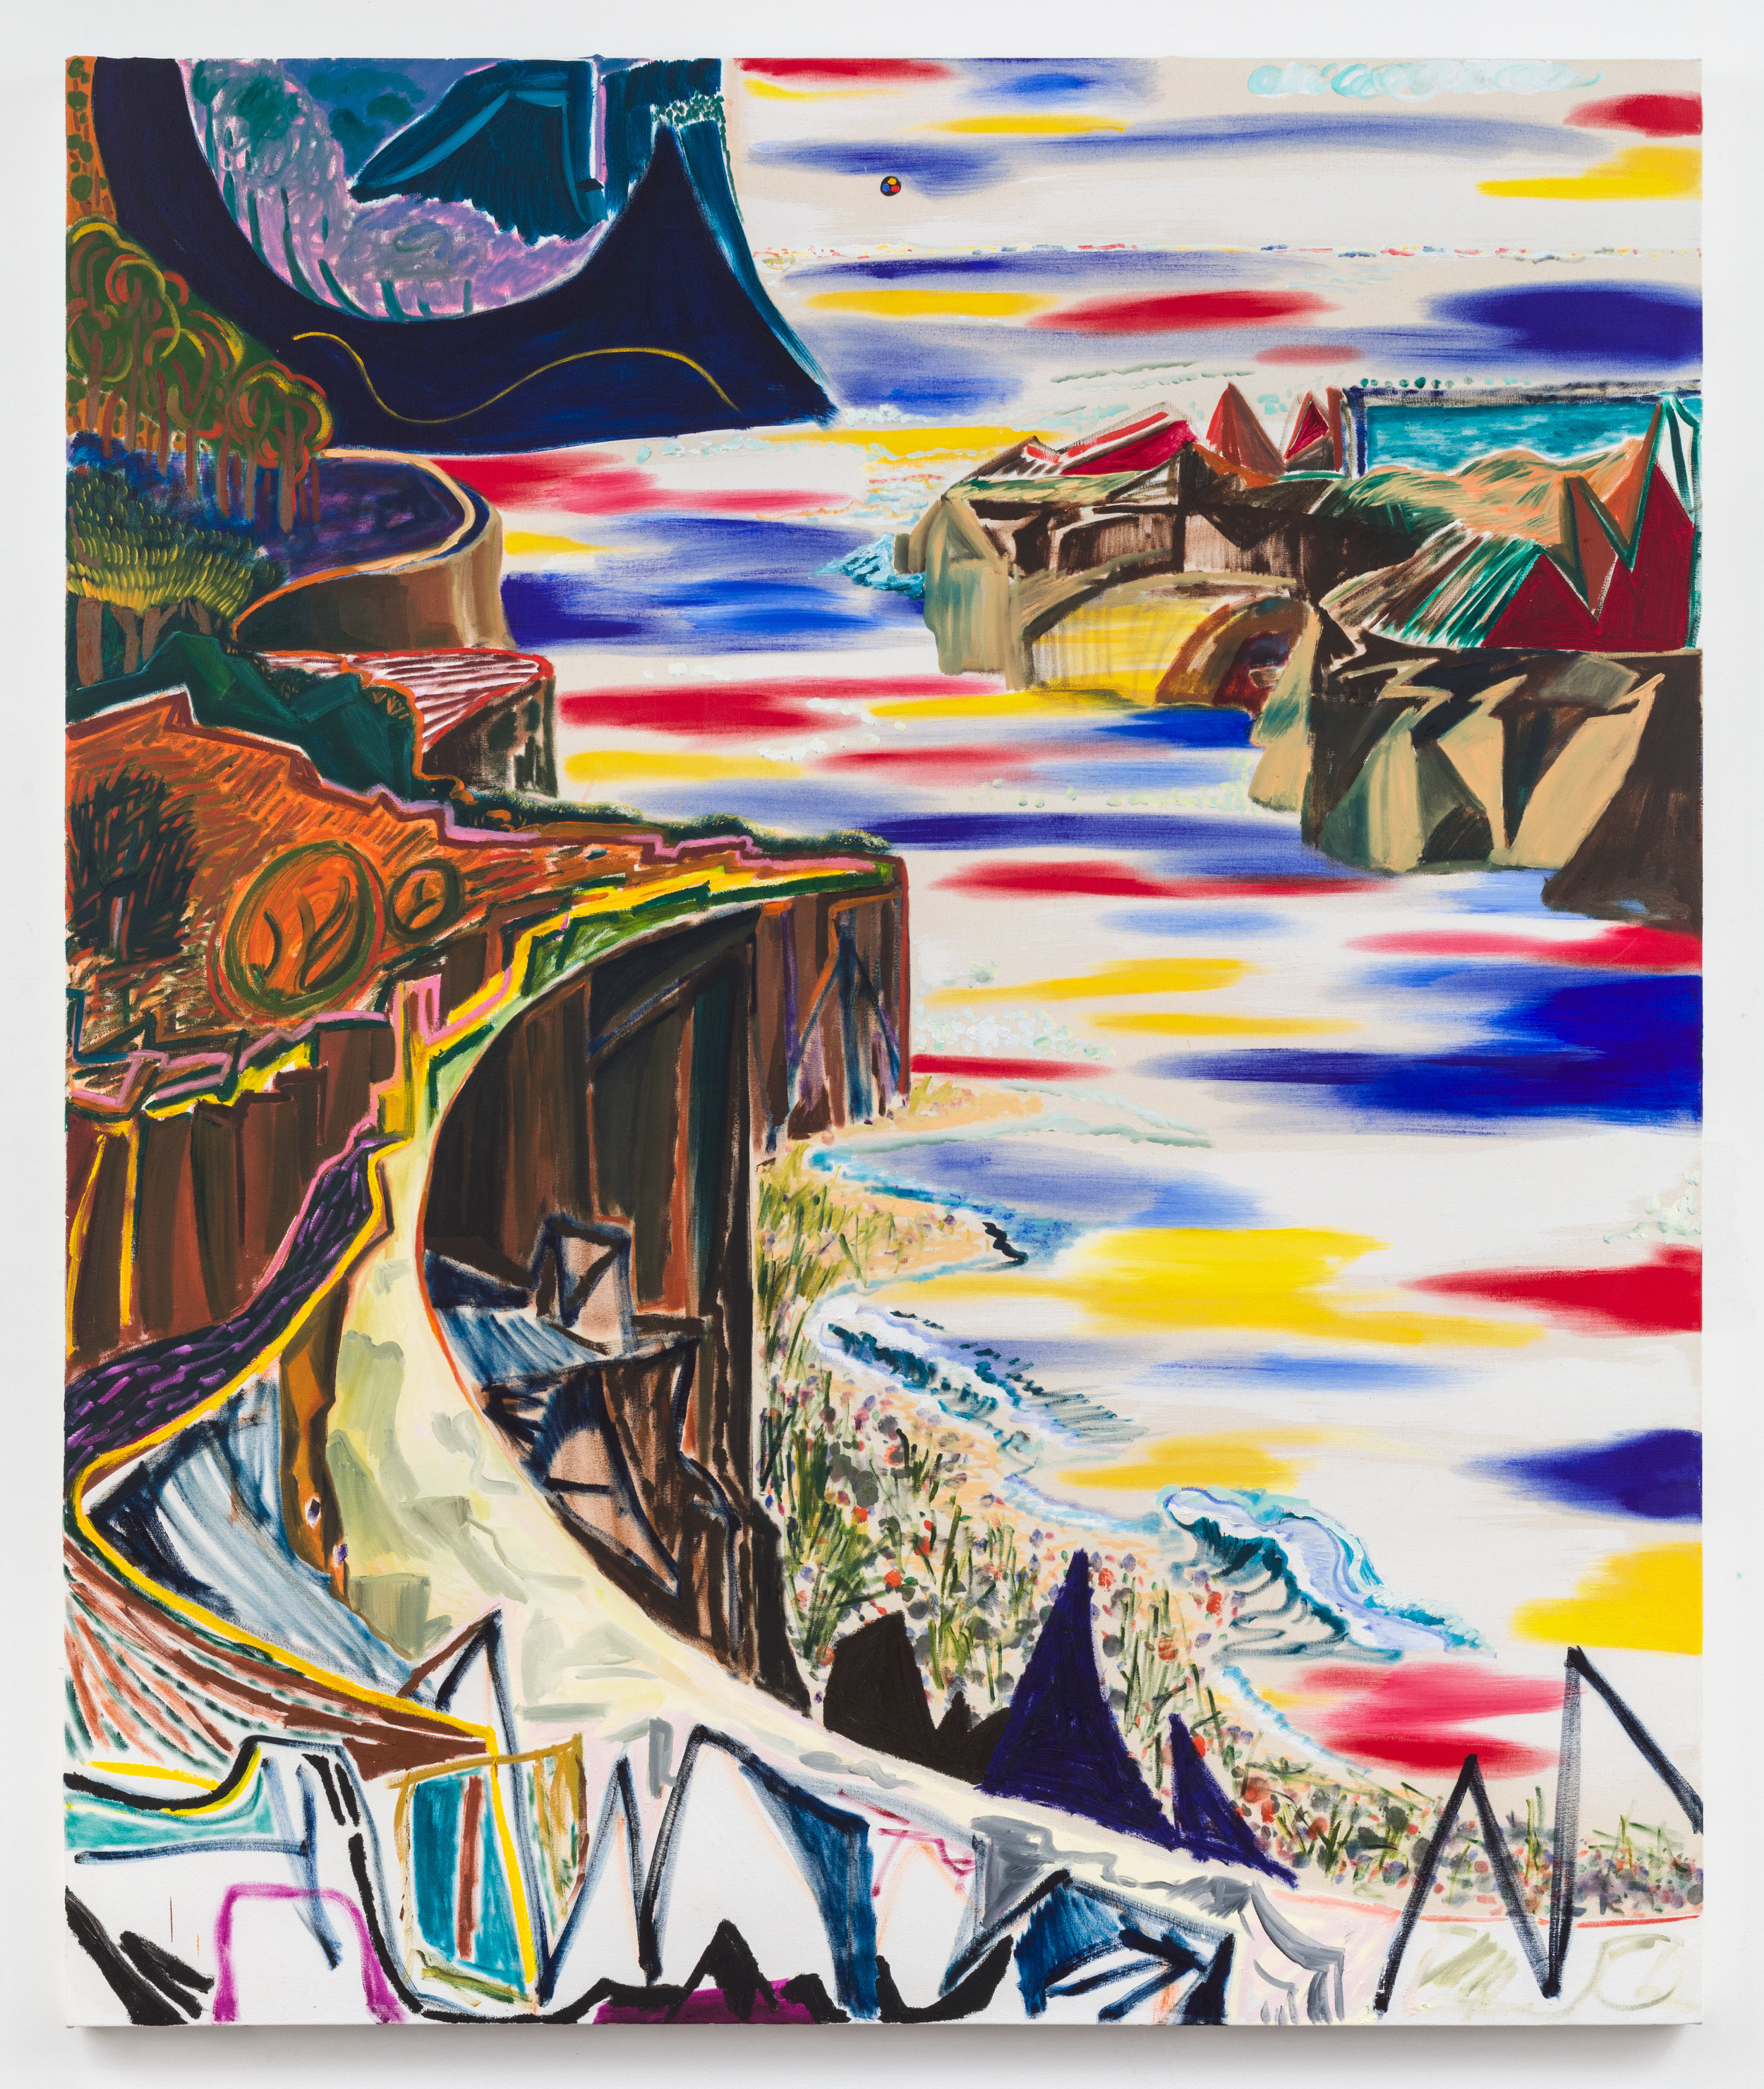 """SHARA HUGHES. """"JAGGED LITTLE HILLS"""" (2018). OIL AND ACRYLIC ON CANVAS. 84 X 70 INCHES. COURTESY THE ARTIST AND RACHEL UFFNER GALLERY."""